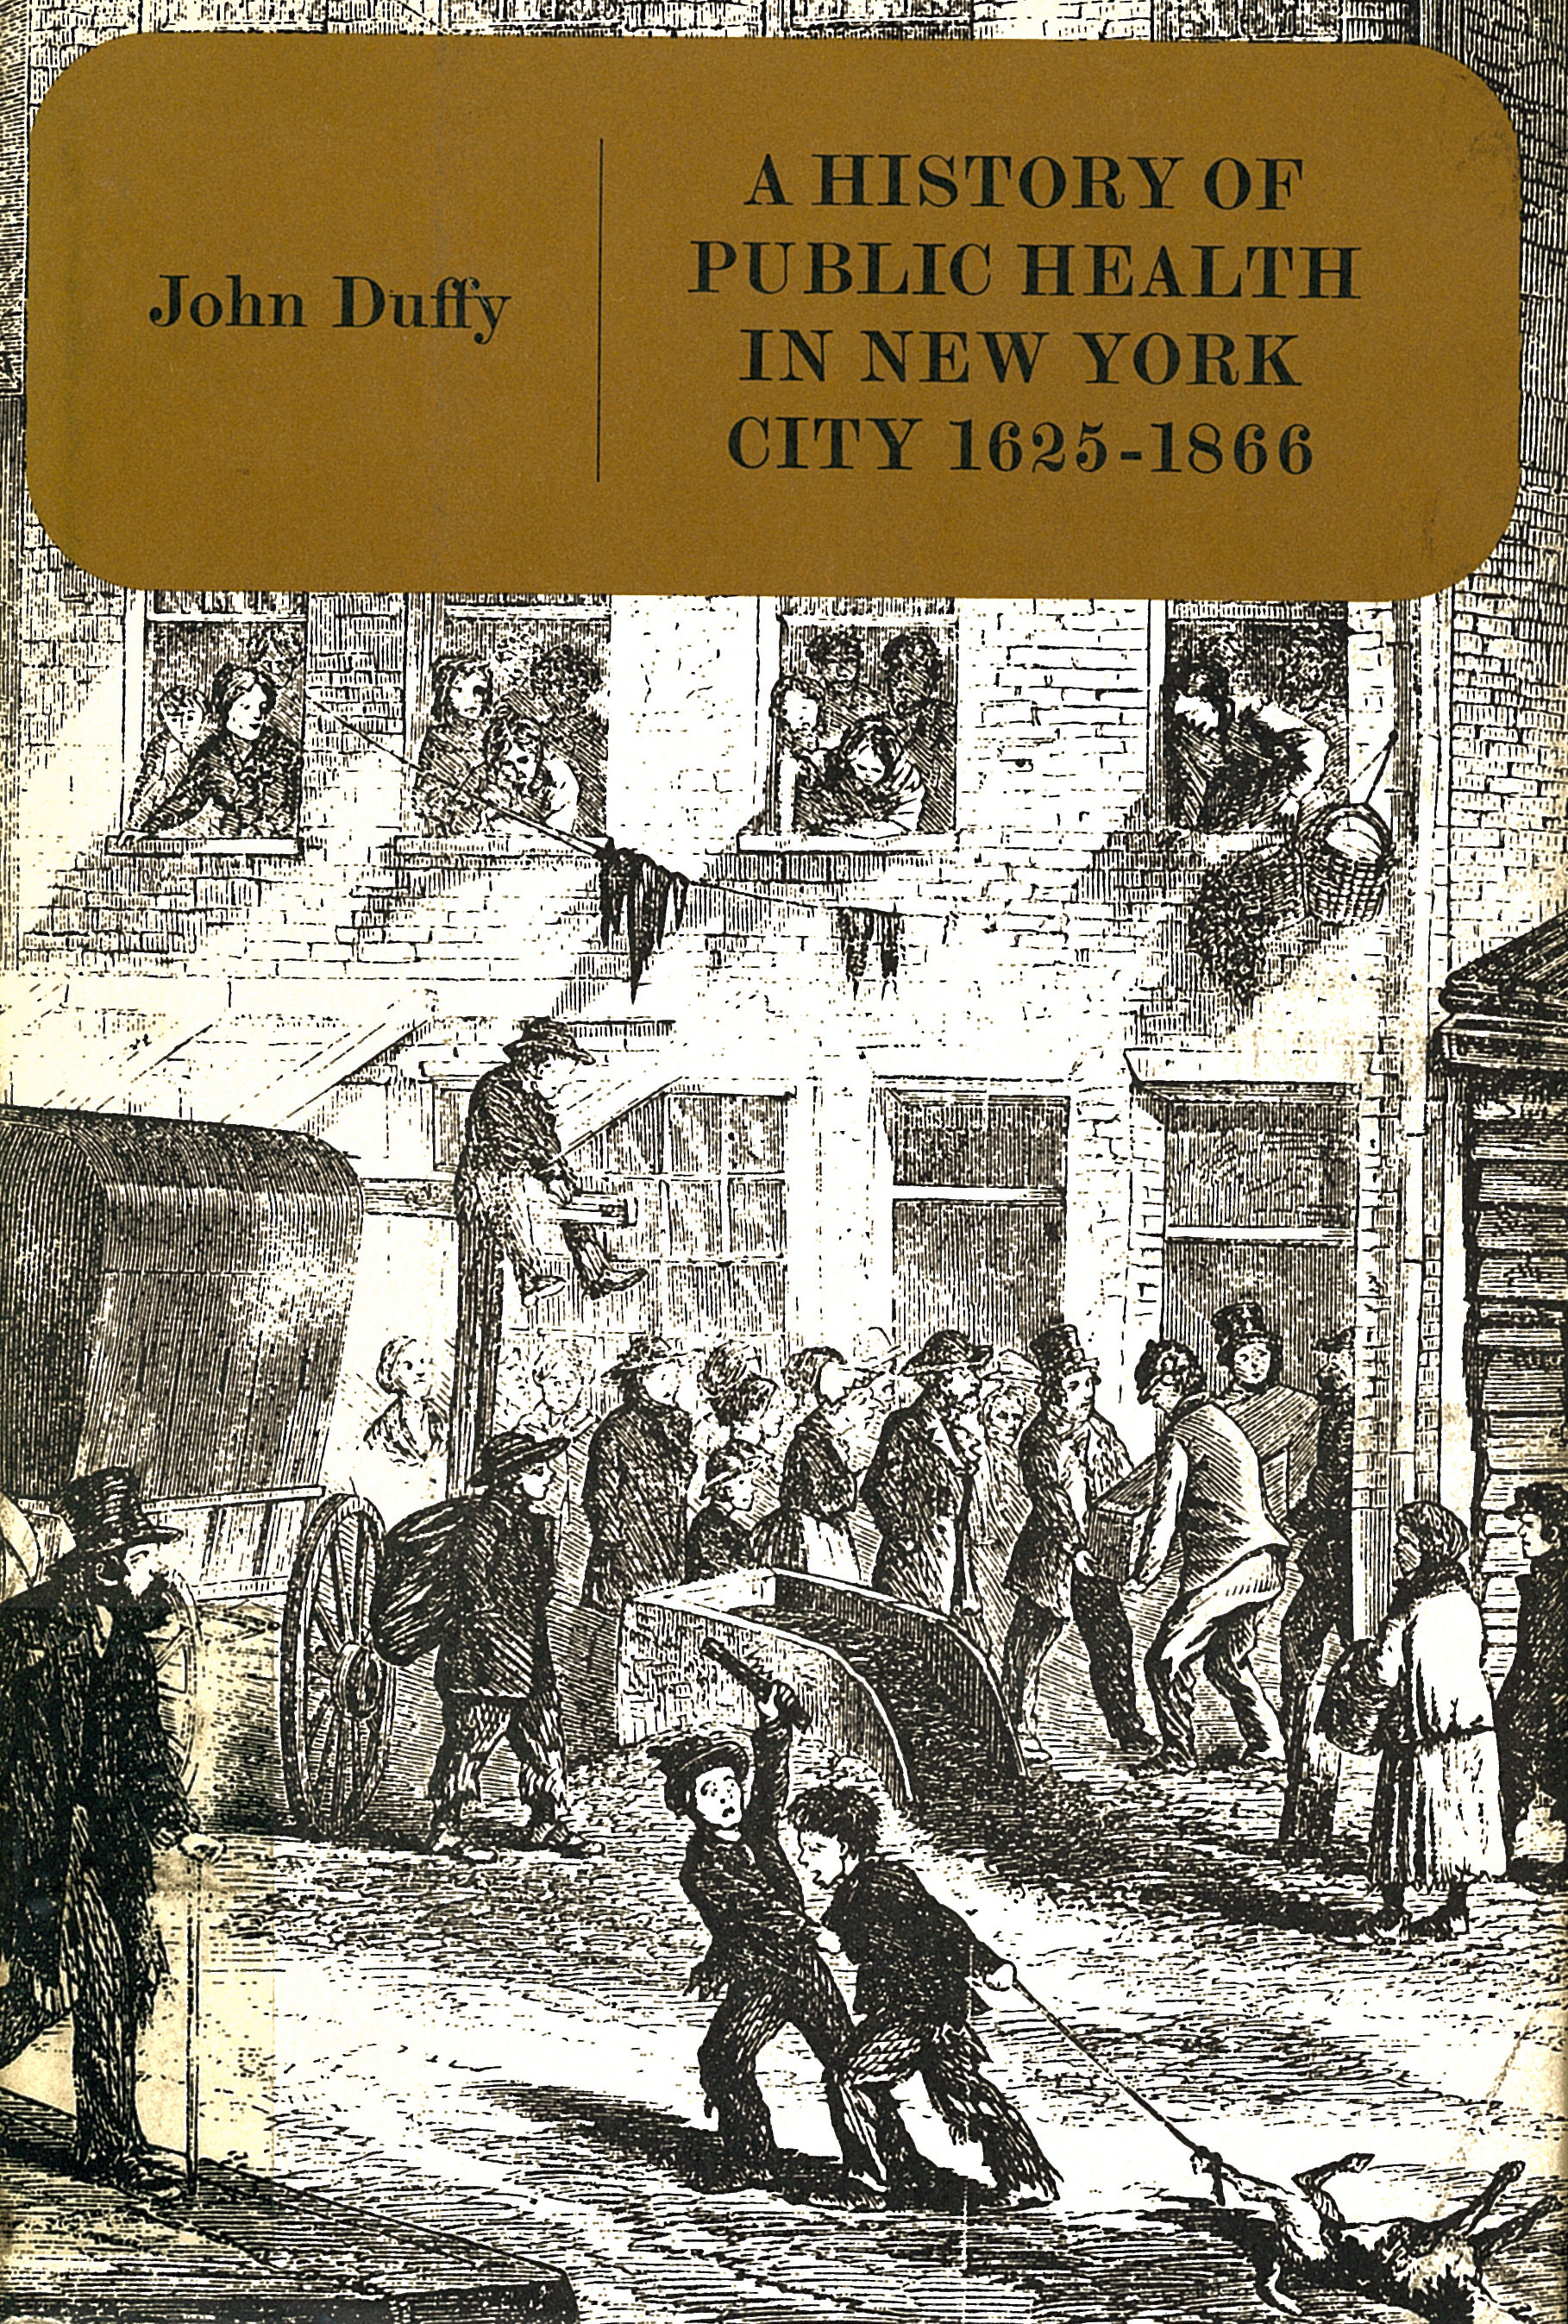 History of Public Health in New York City, 1625-1866